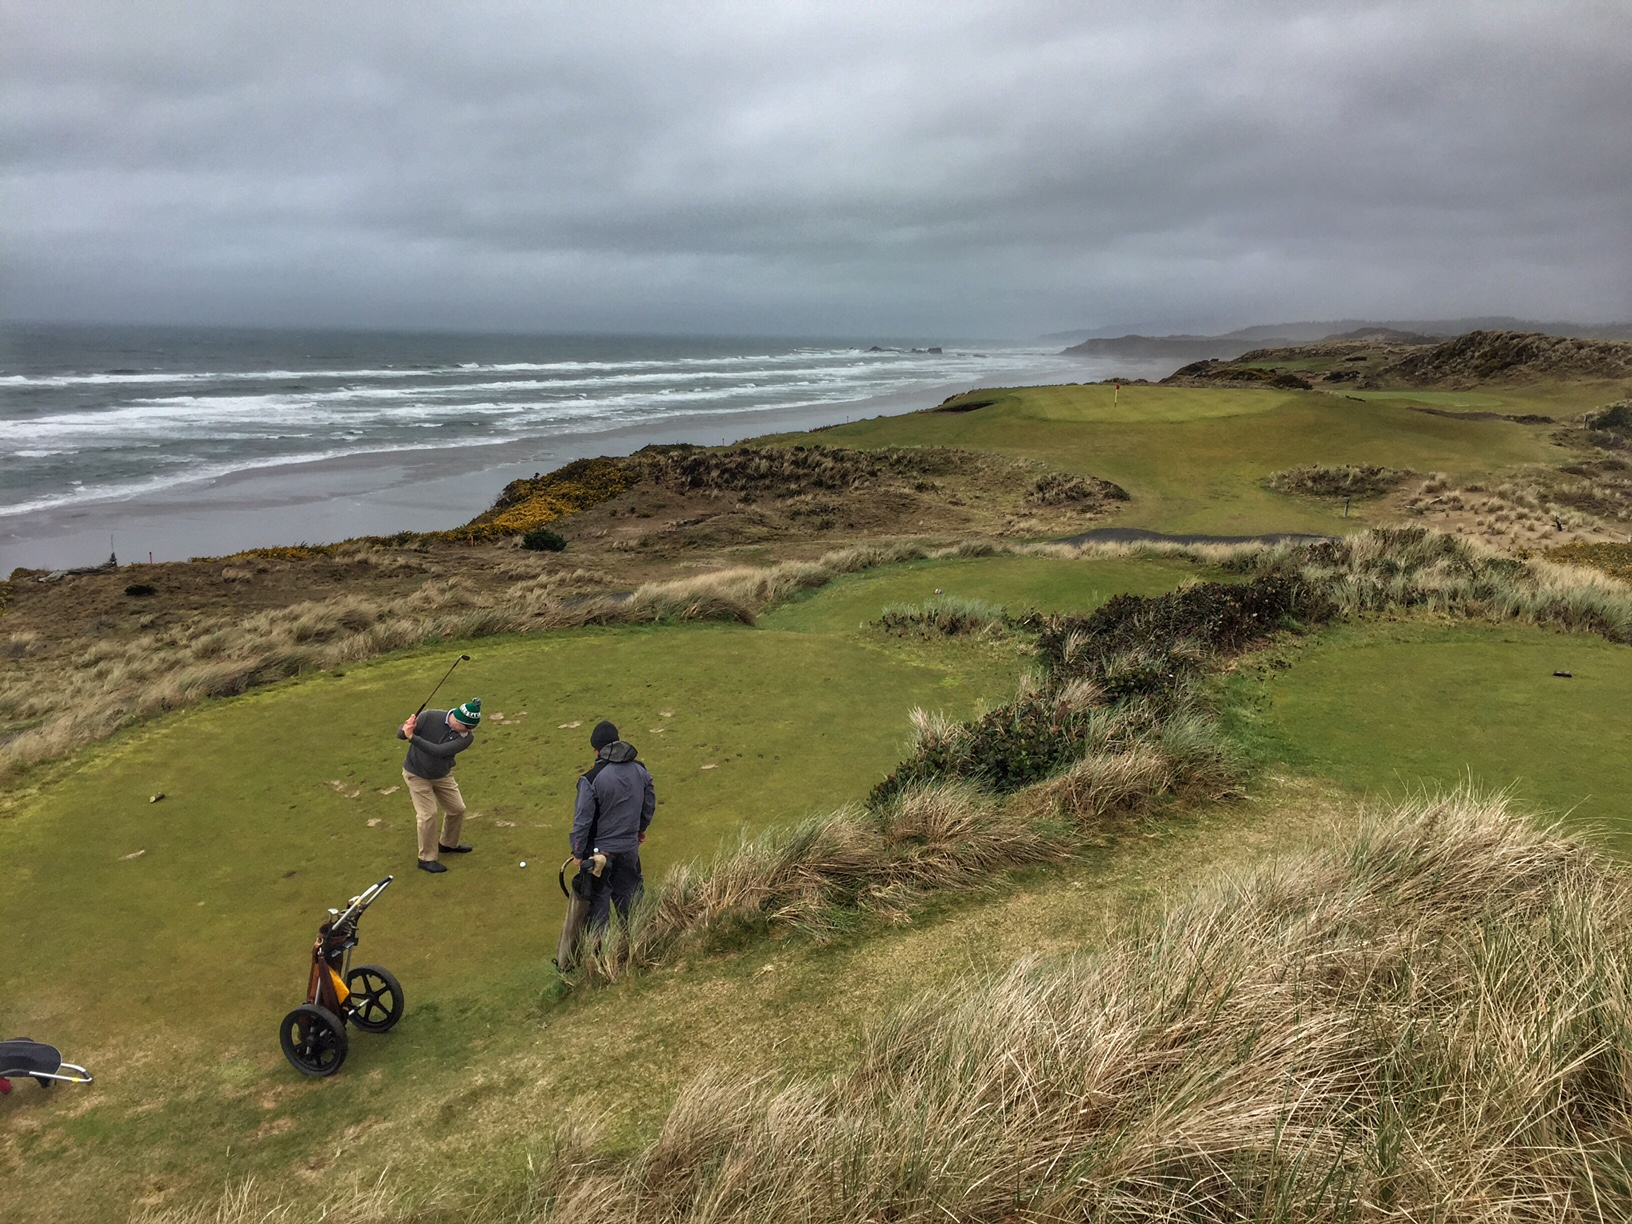 Bandon Dunes supplies some of the most authentic links golf in the U.S. (Jason Scott Deegan/Golf Advisor)